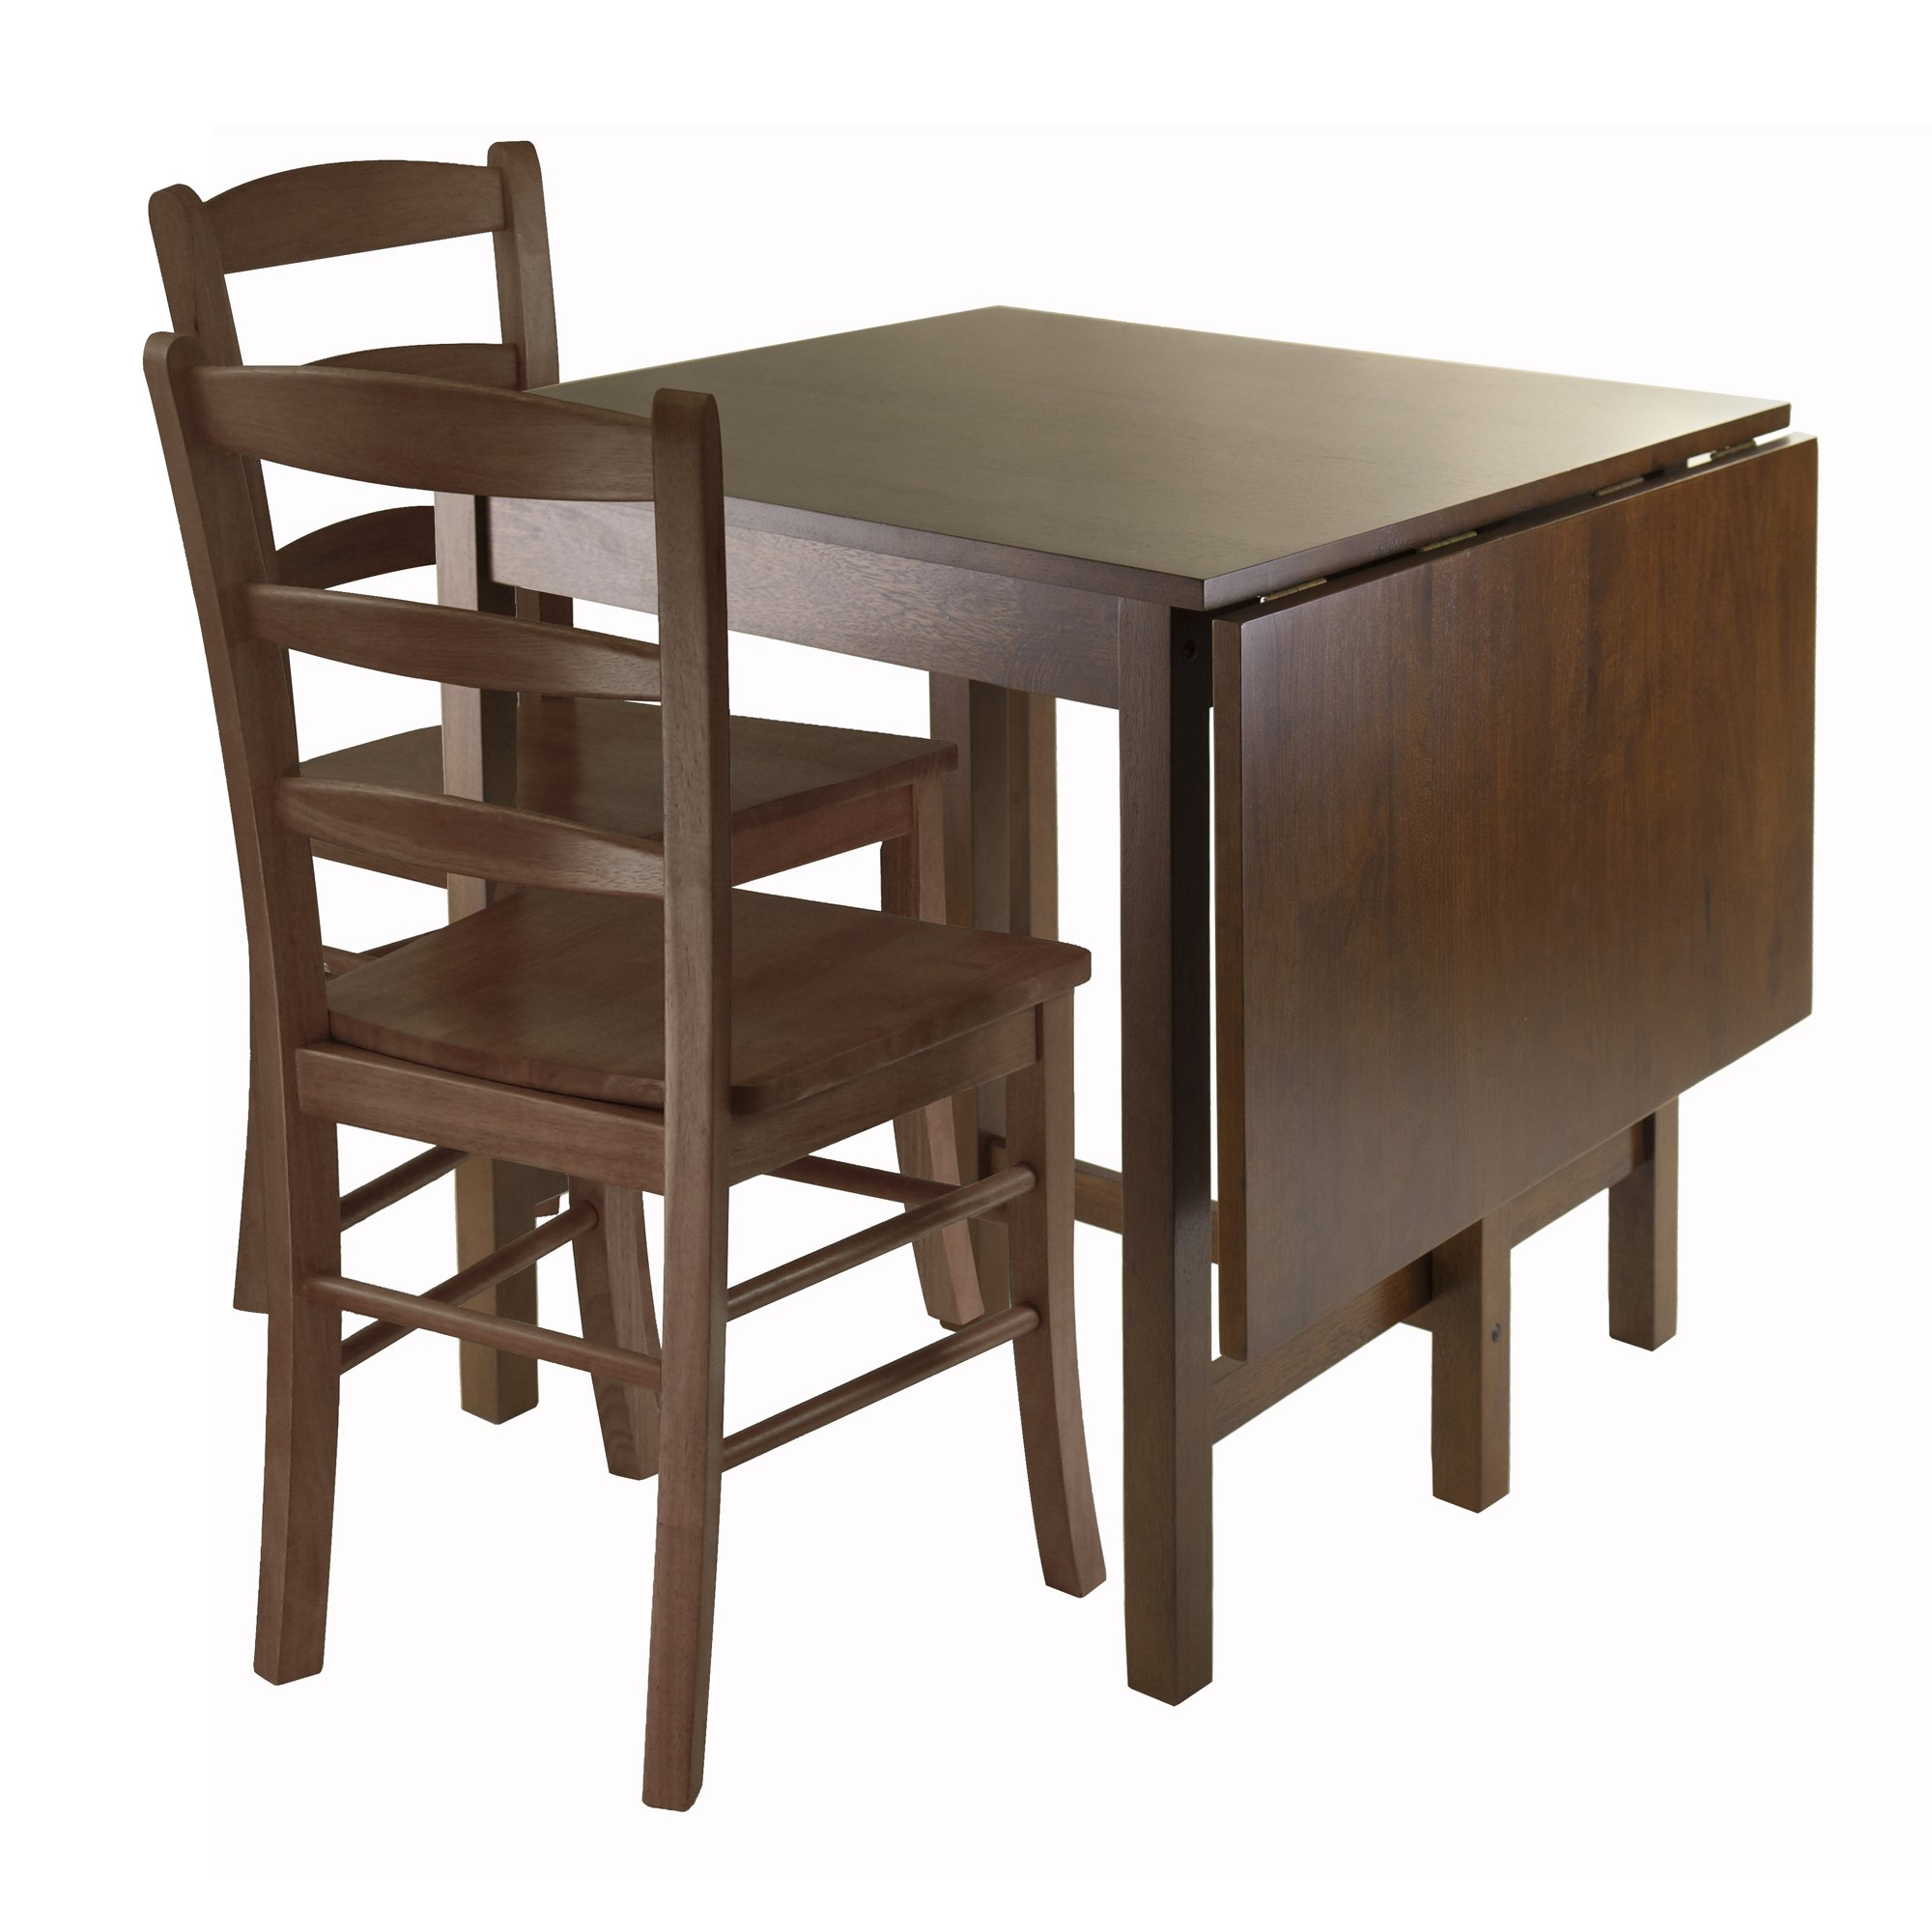 Winsome Lynden 3-Piece Dining Table with 2-Ladder Back Chairs